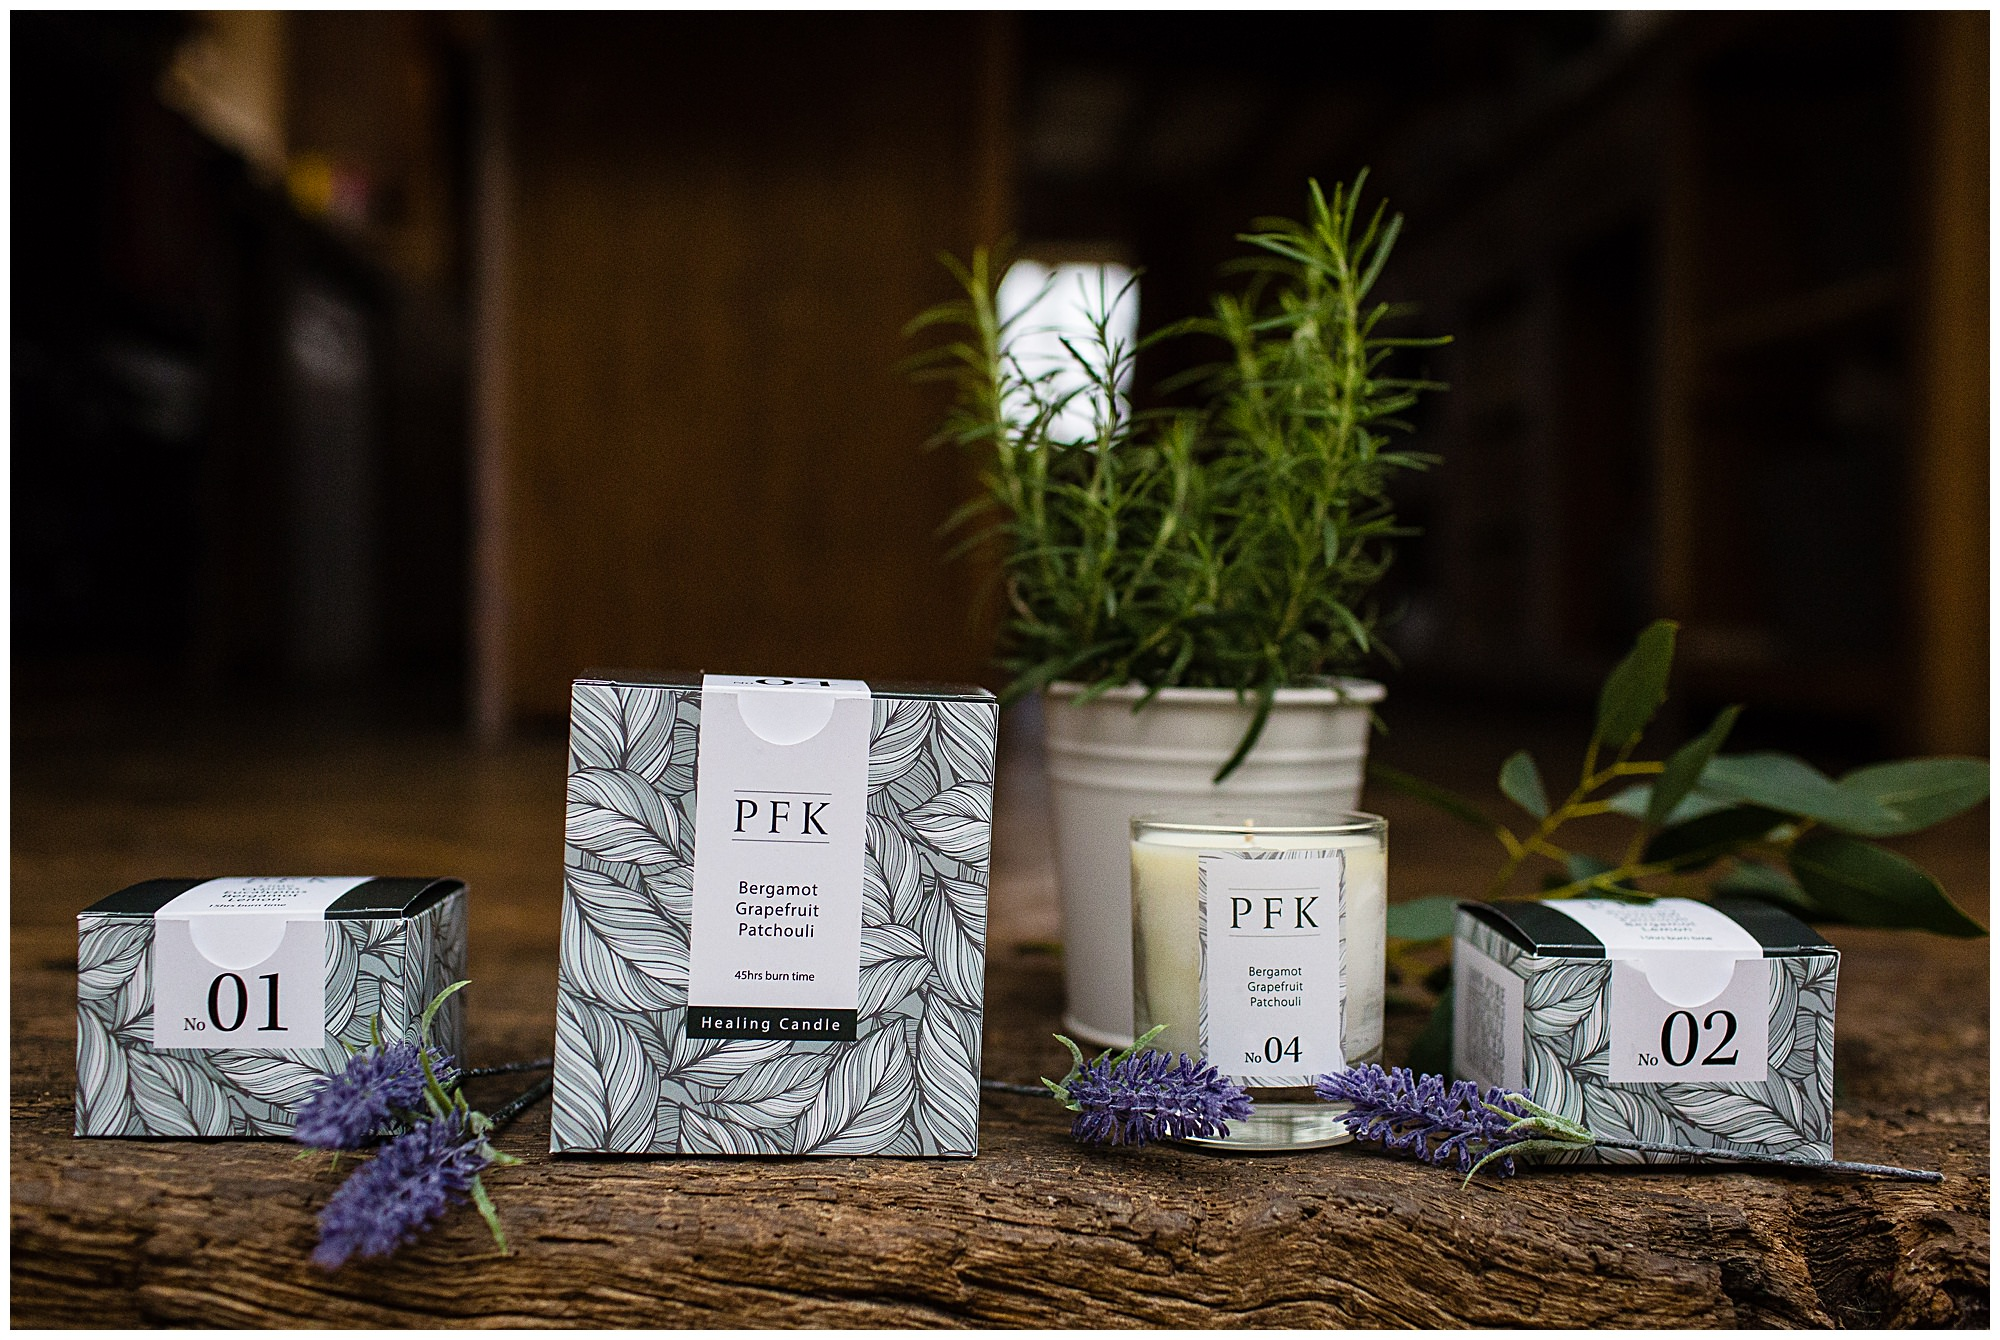 PFK candles on wooden surface with natural ingredients and with box packaging